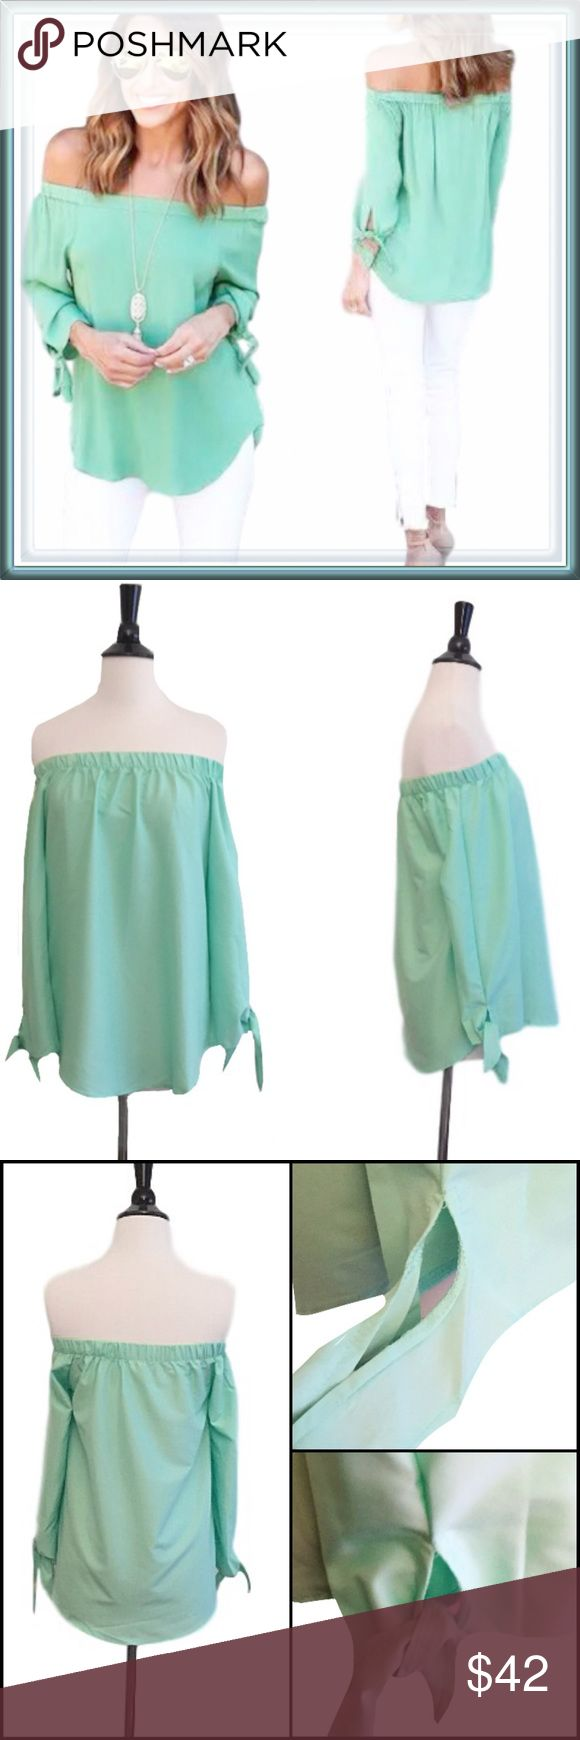 "Off the shoulder mint green long sleeve top ➖SIZE: Medium     ➖BUST: 17.5""     ➖LENGTH: 18"" from the top hem to the bottom.  ➖STYLE: An off the shoulder (has material that holds it in that style when on) with sleeves where at the end, there are two pieces that tie into a bow / knot it - whatever you choose to do with it. ❌NO TRADE Tops Blouses"